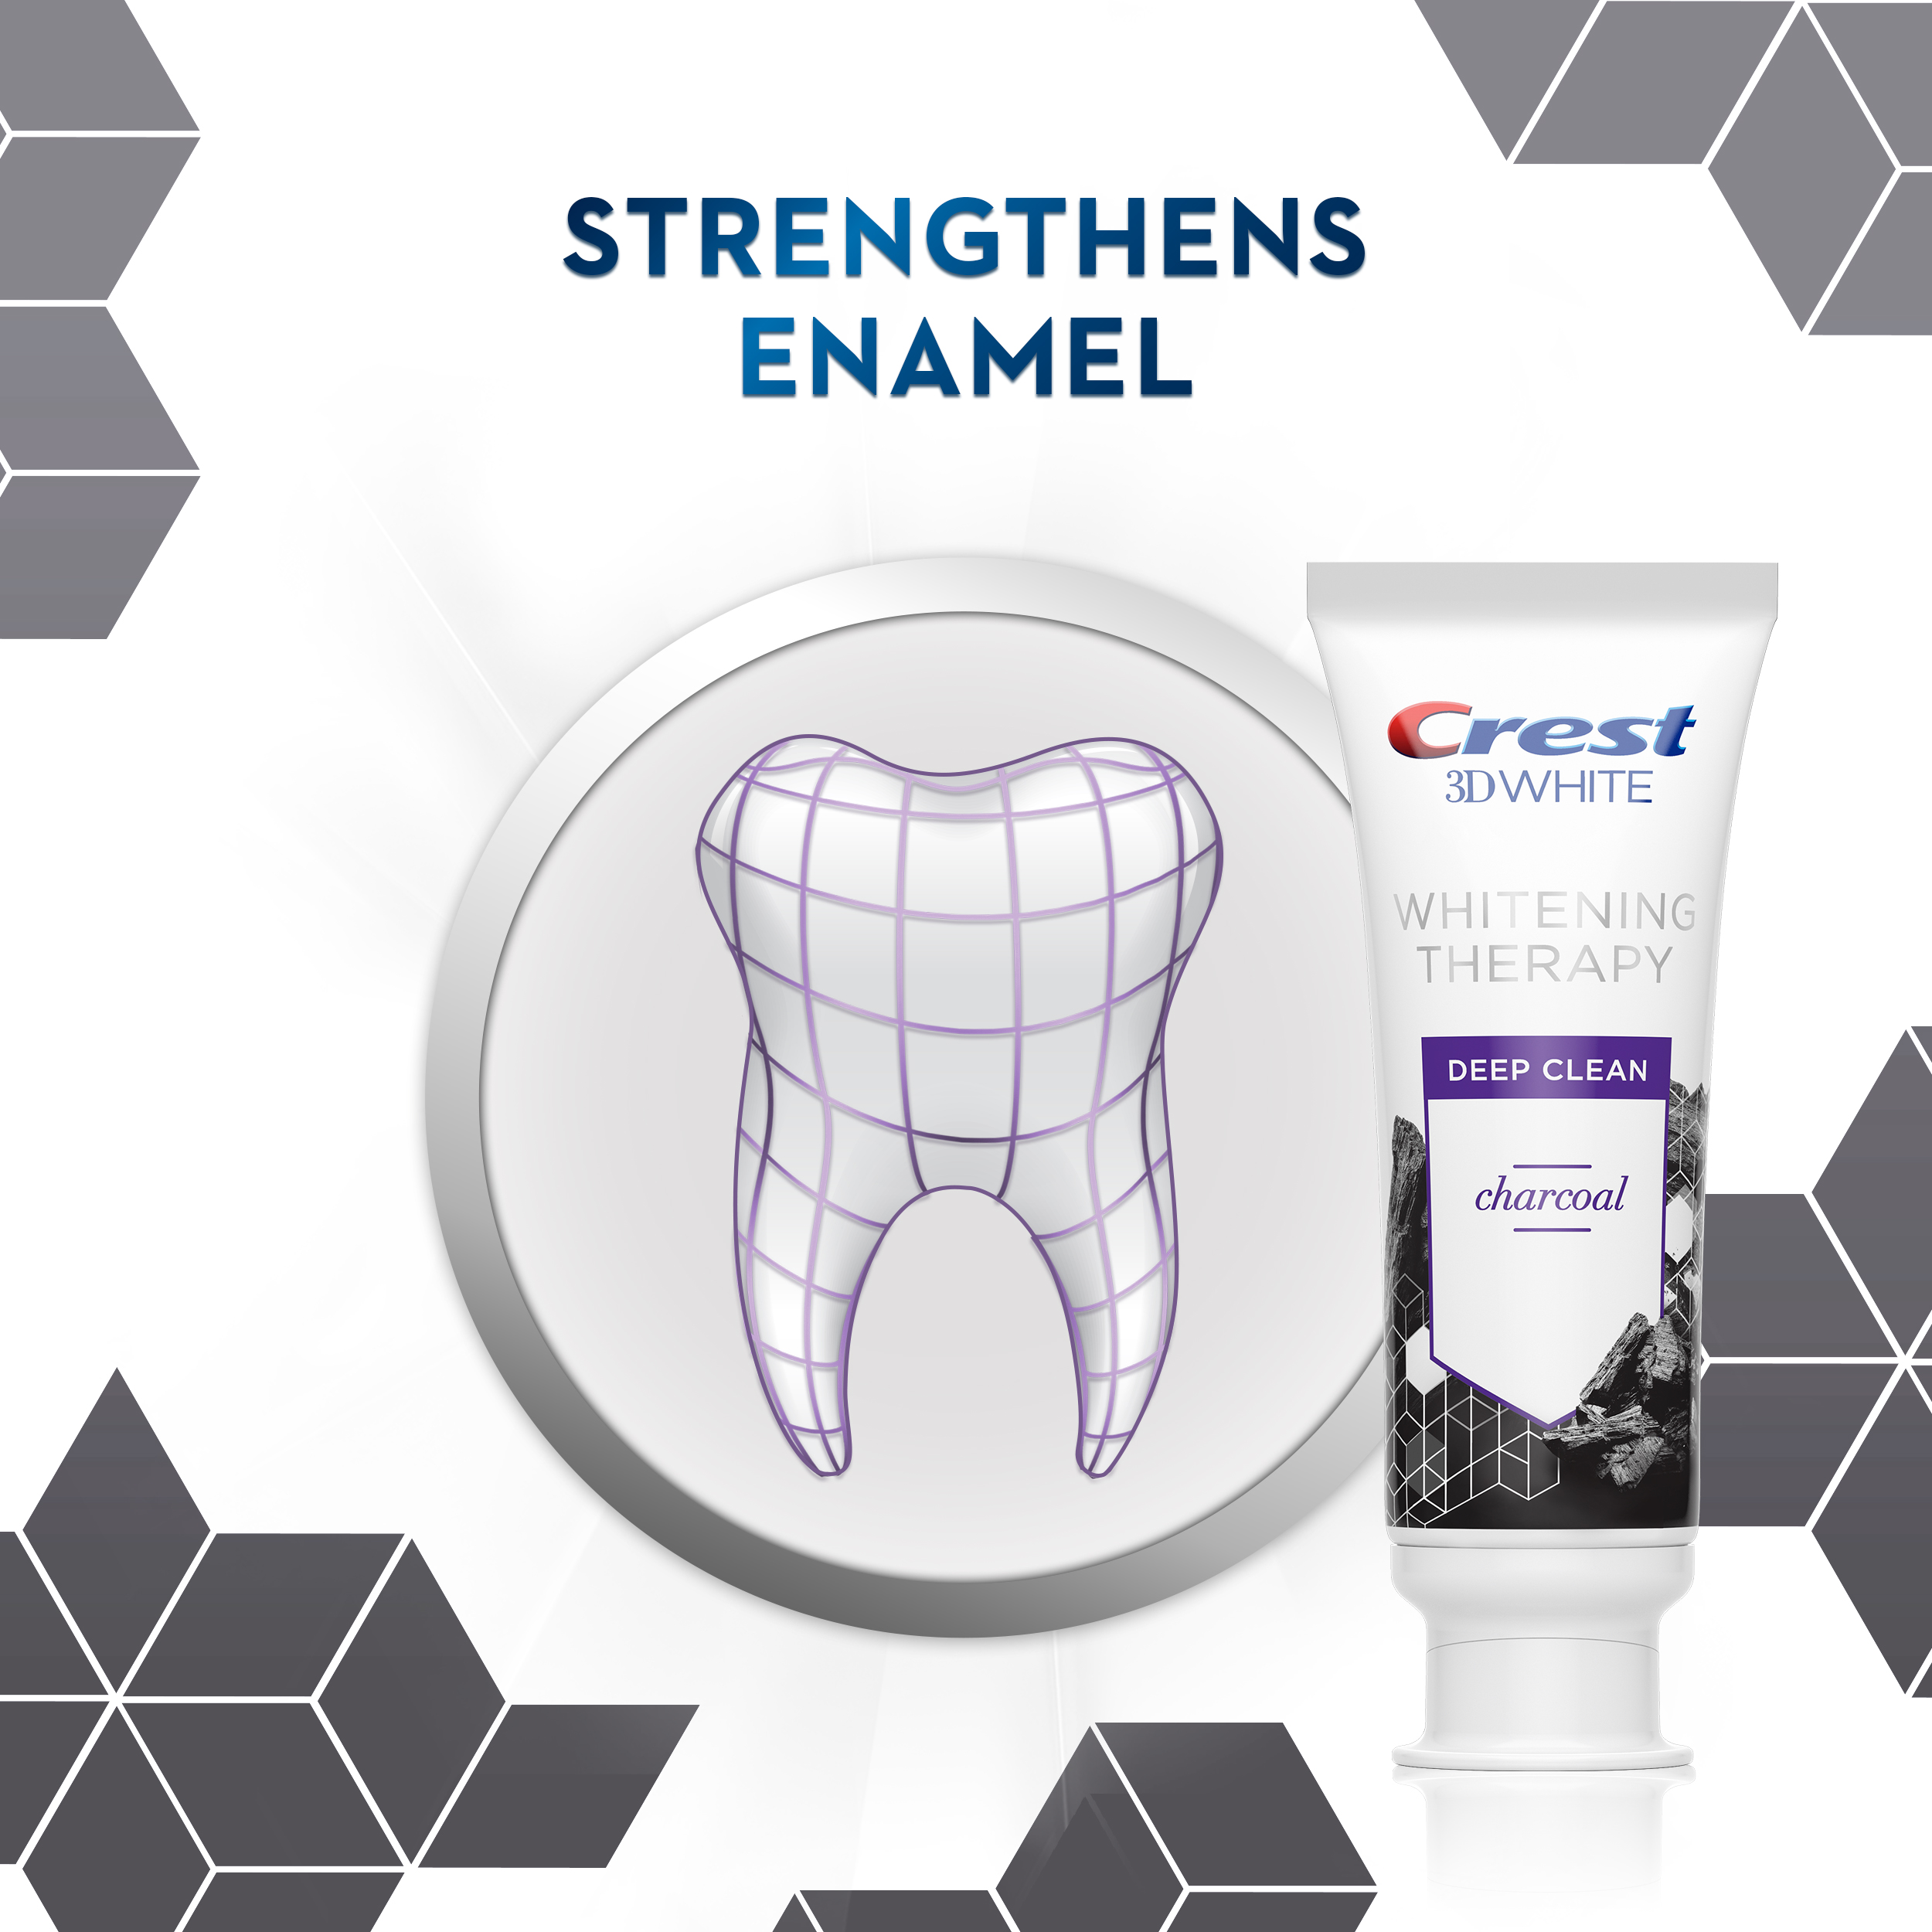 Crest 3D White Whitening Therapy Toothpaste – Charcoal 2